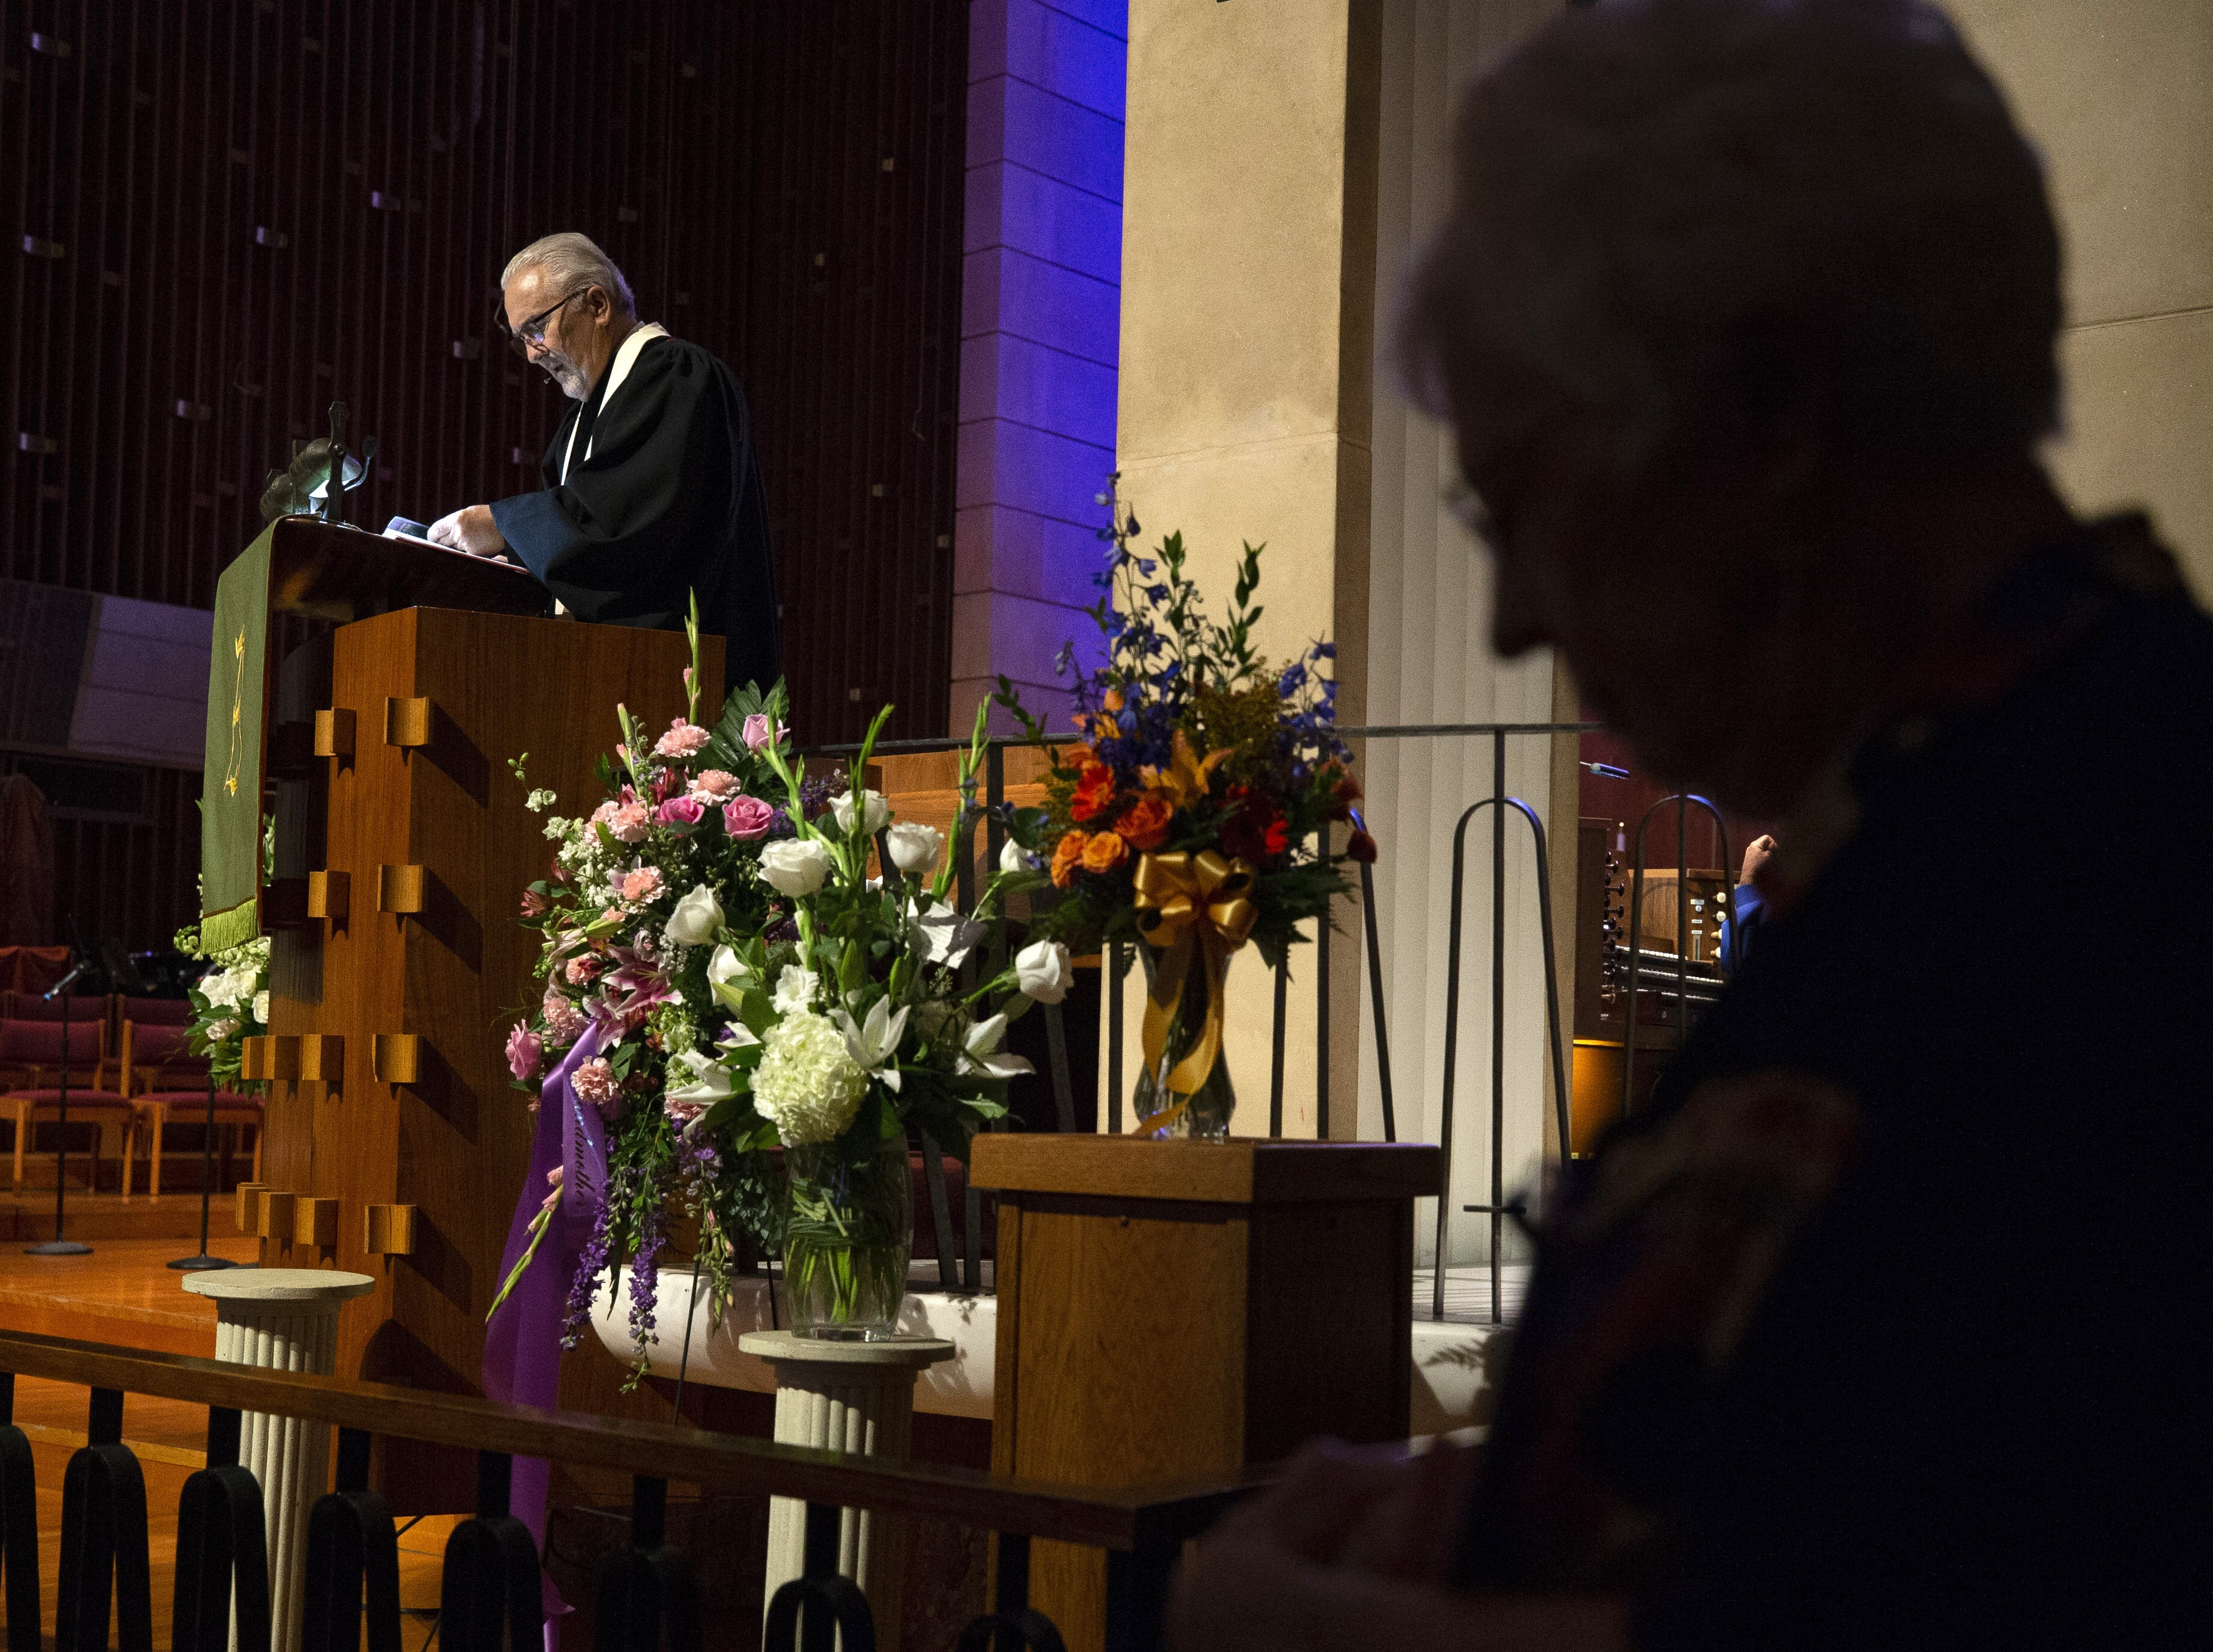 Reverend Dr. Denny Silk speaks during memorial services at First United Methodist Church in Phoenix for Carolyn Warner on October 25, 2018. Warner was the 15th Superintendent of Public Education for the state of Arizona and nearly became the state's first female governor in 1986.